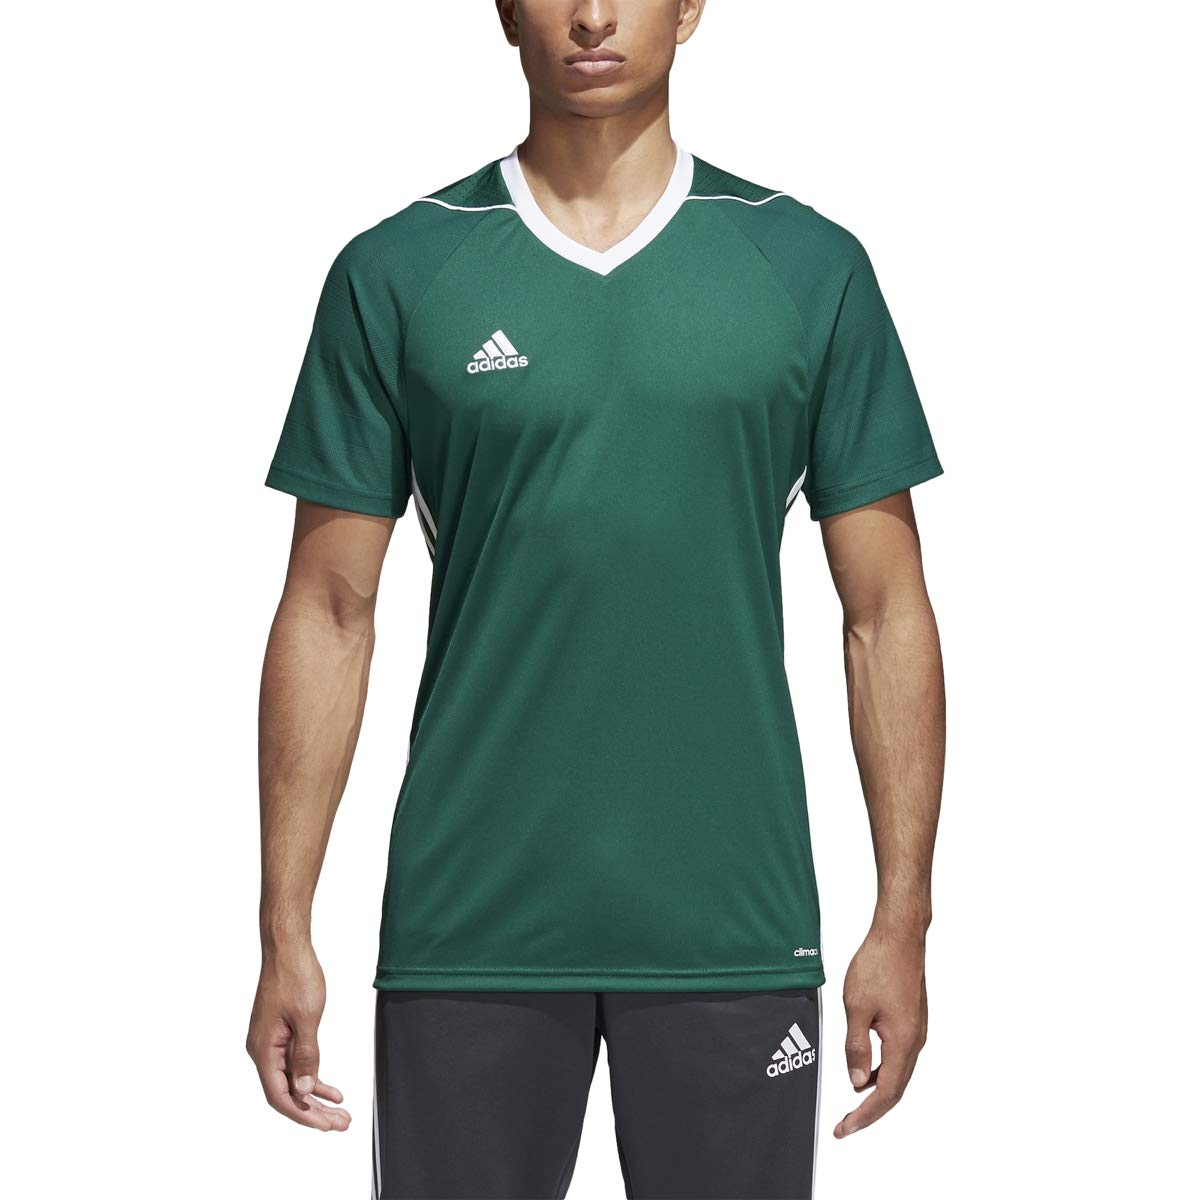 adidas Tiro 17 Jersey - Men's Soccer 2XL Collegiate Green/White by adidas